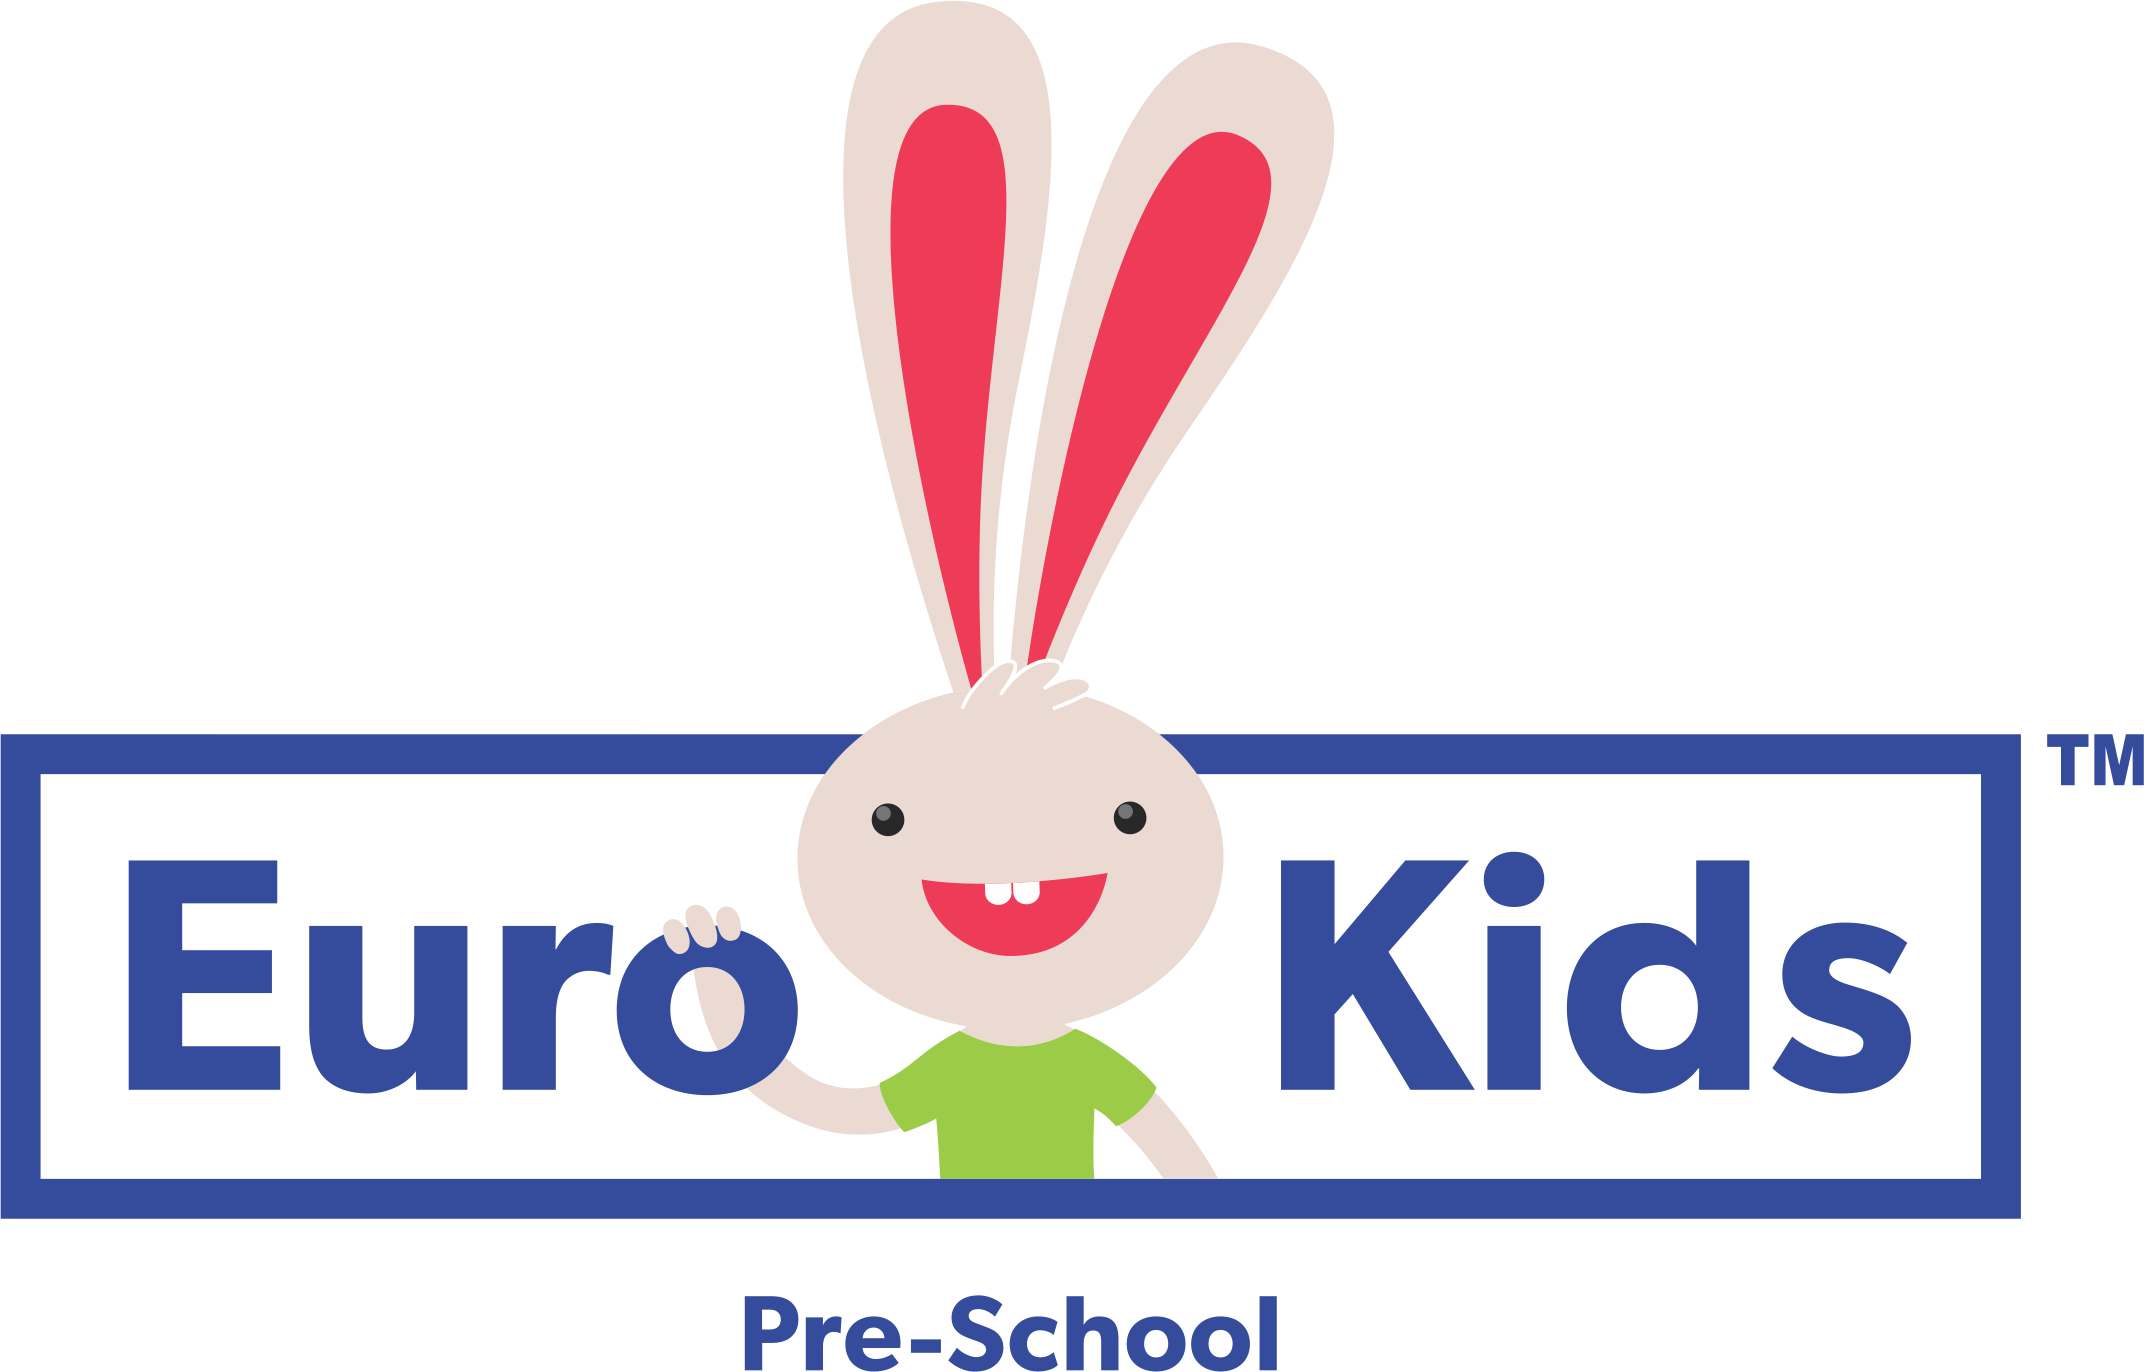 EuroKids International private limited